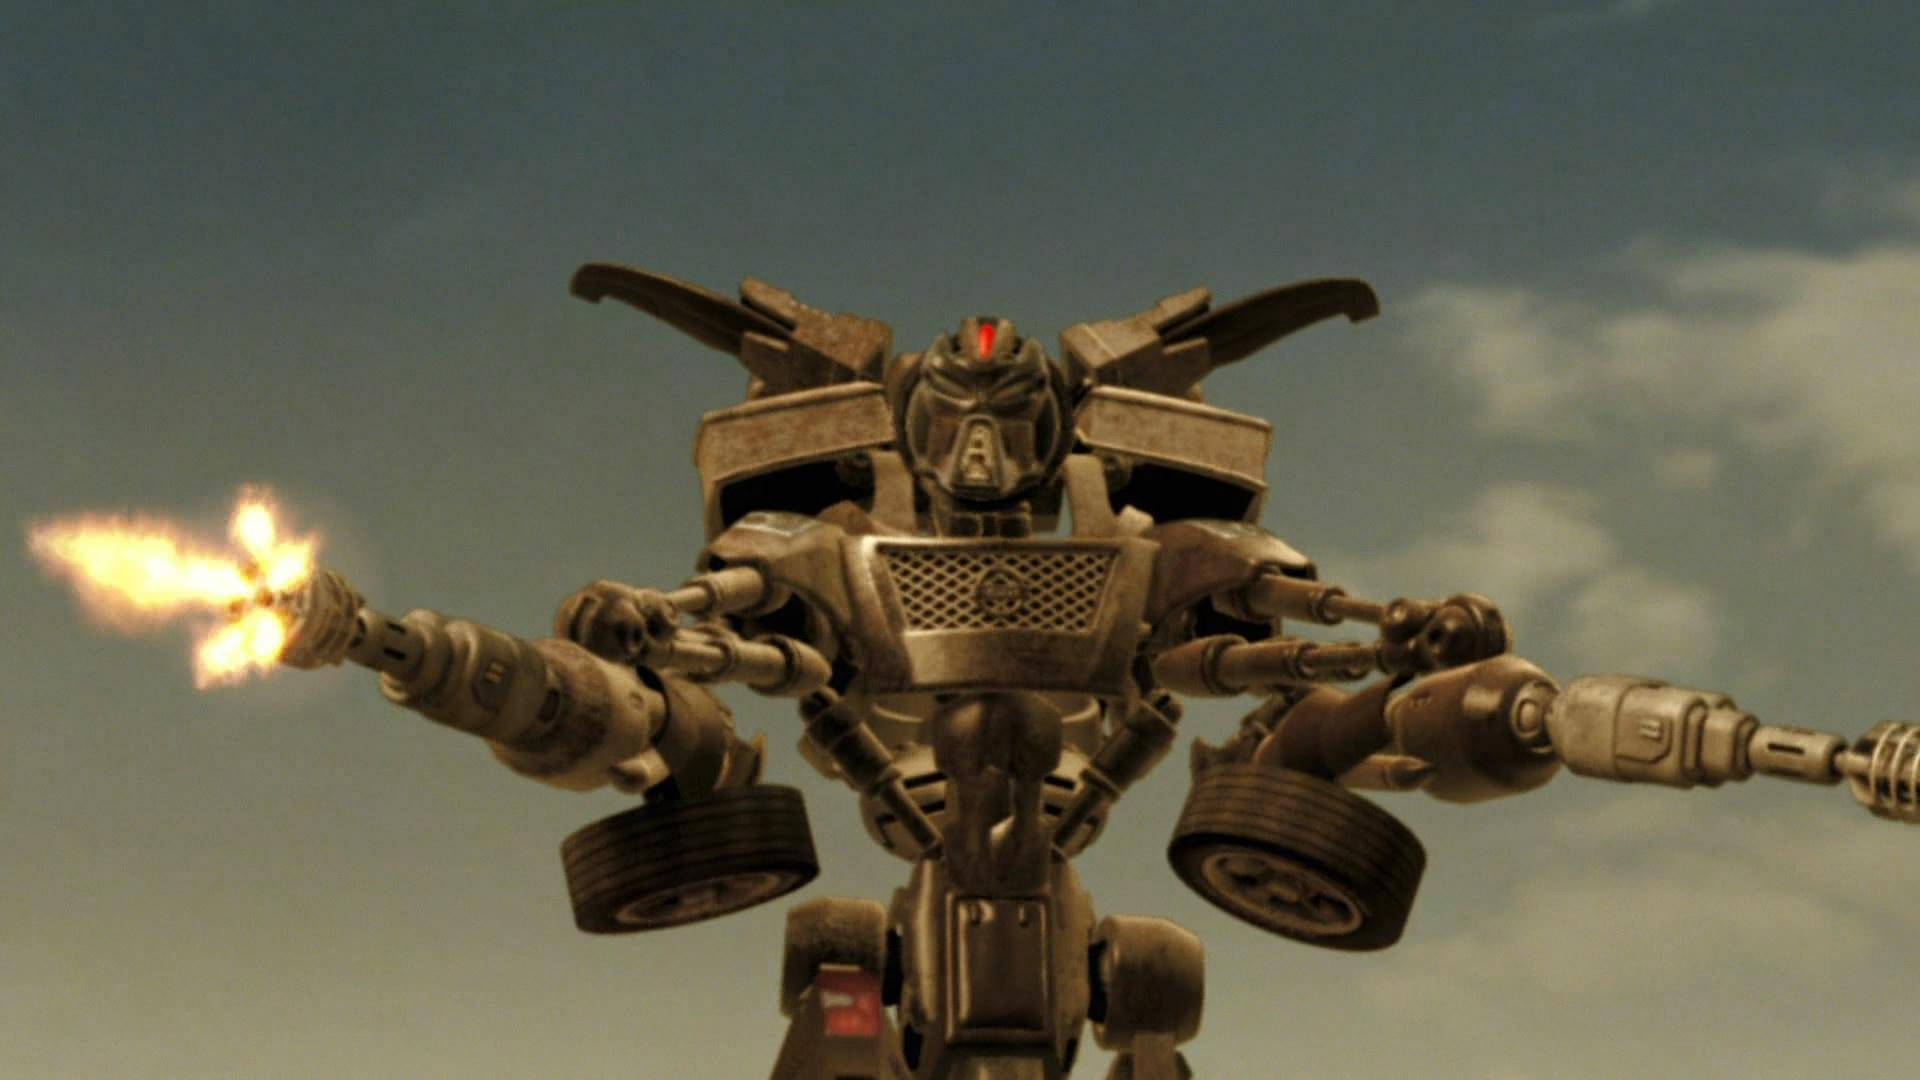 A Z-Bot in Transmorphers (2007)